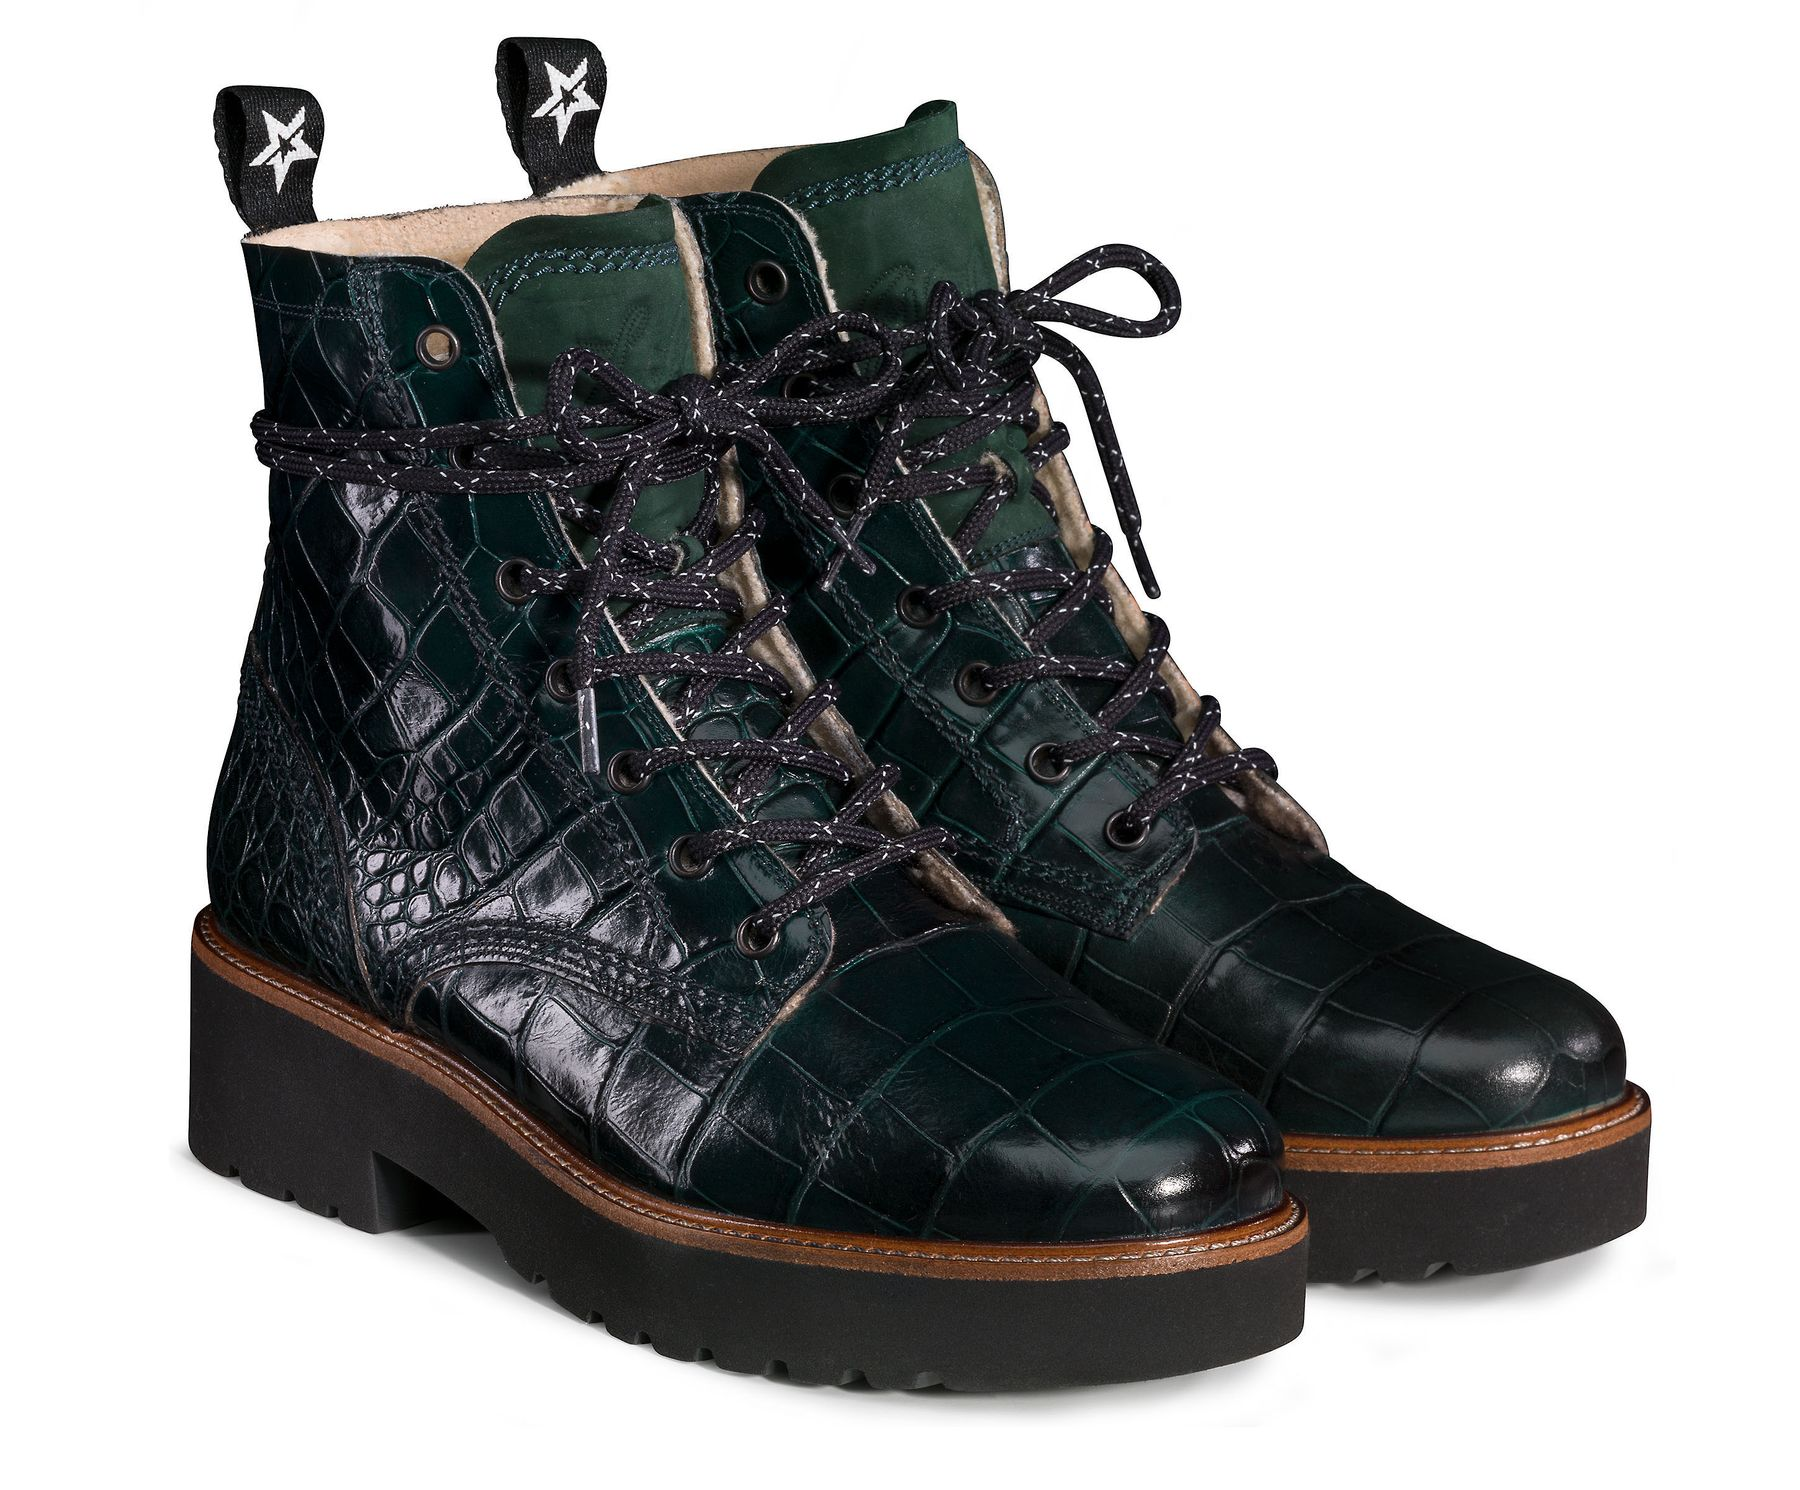 Sito di previsione vanità gettone  Lace-up booties with warm lining in green - Paul Green